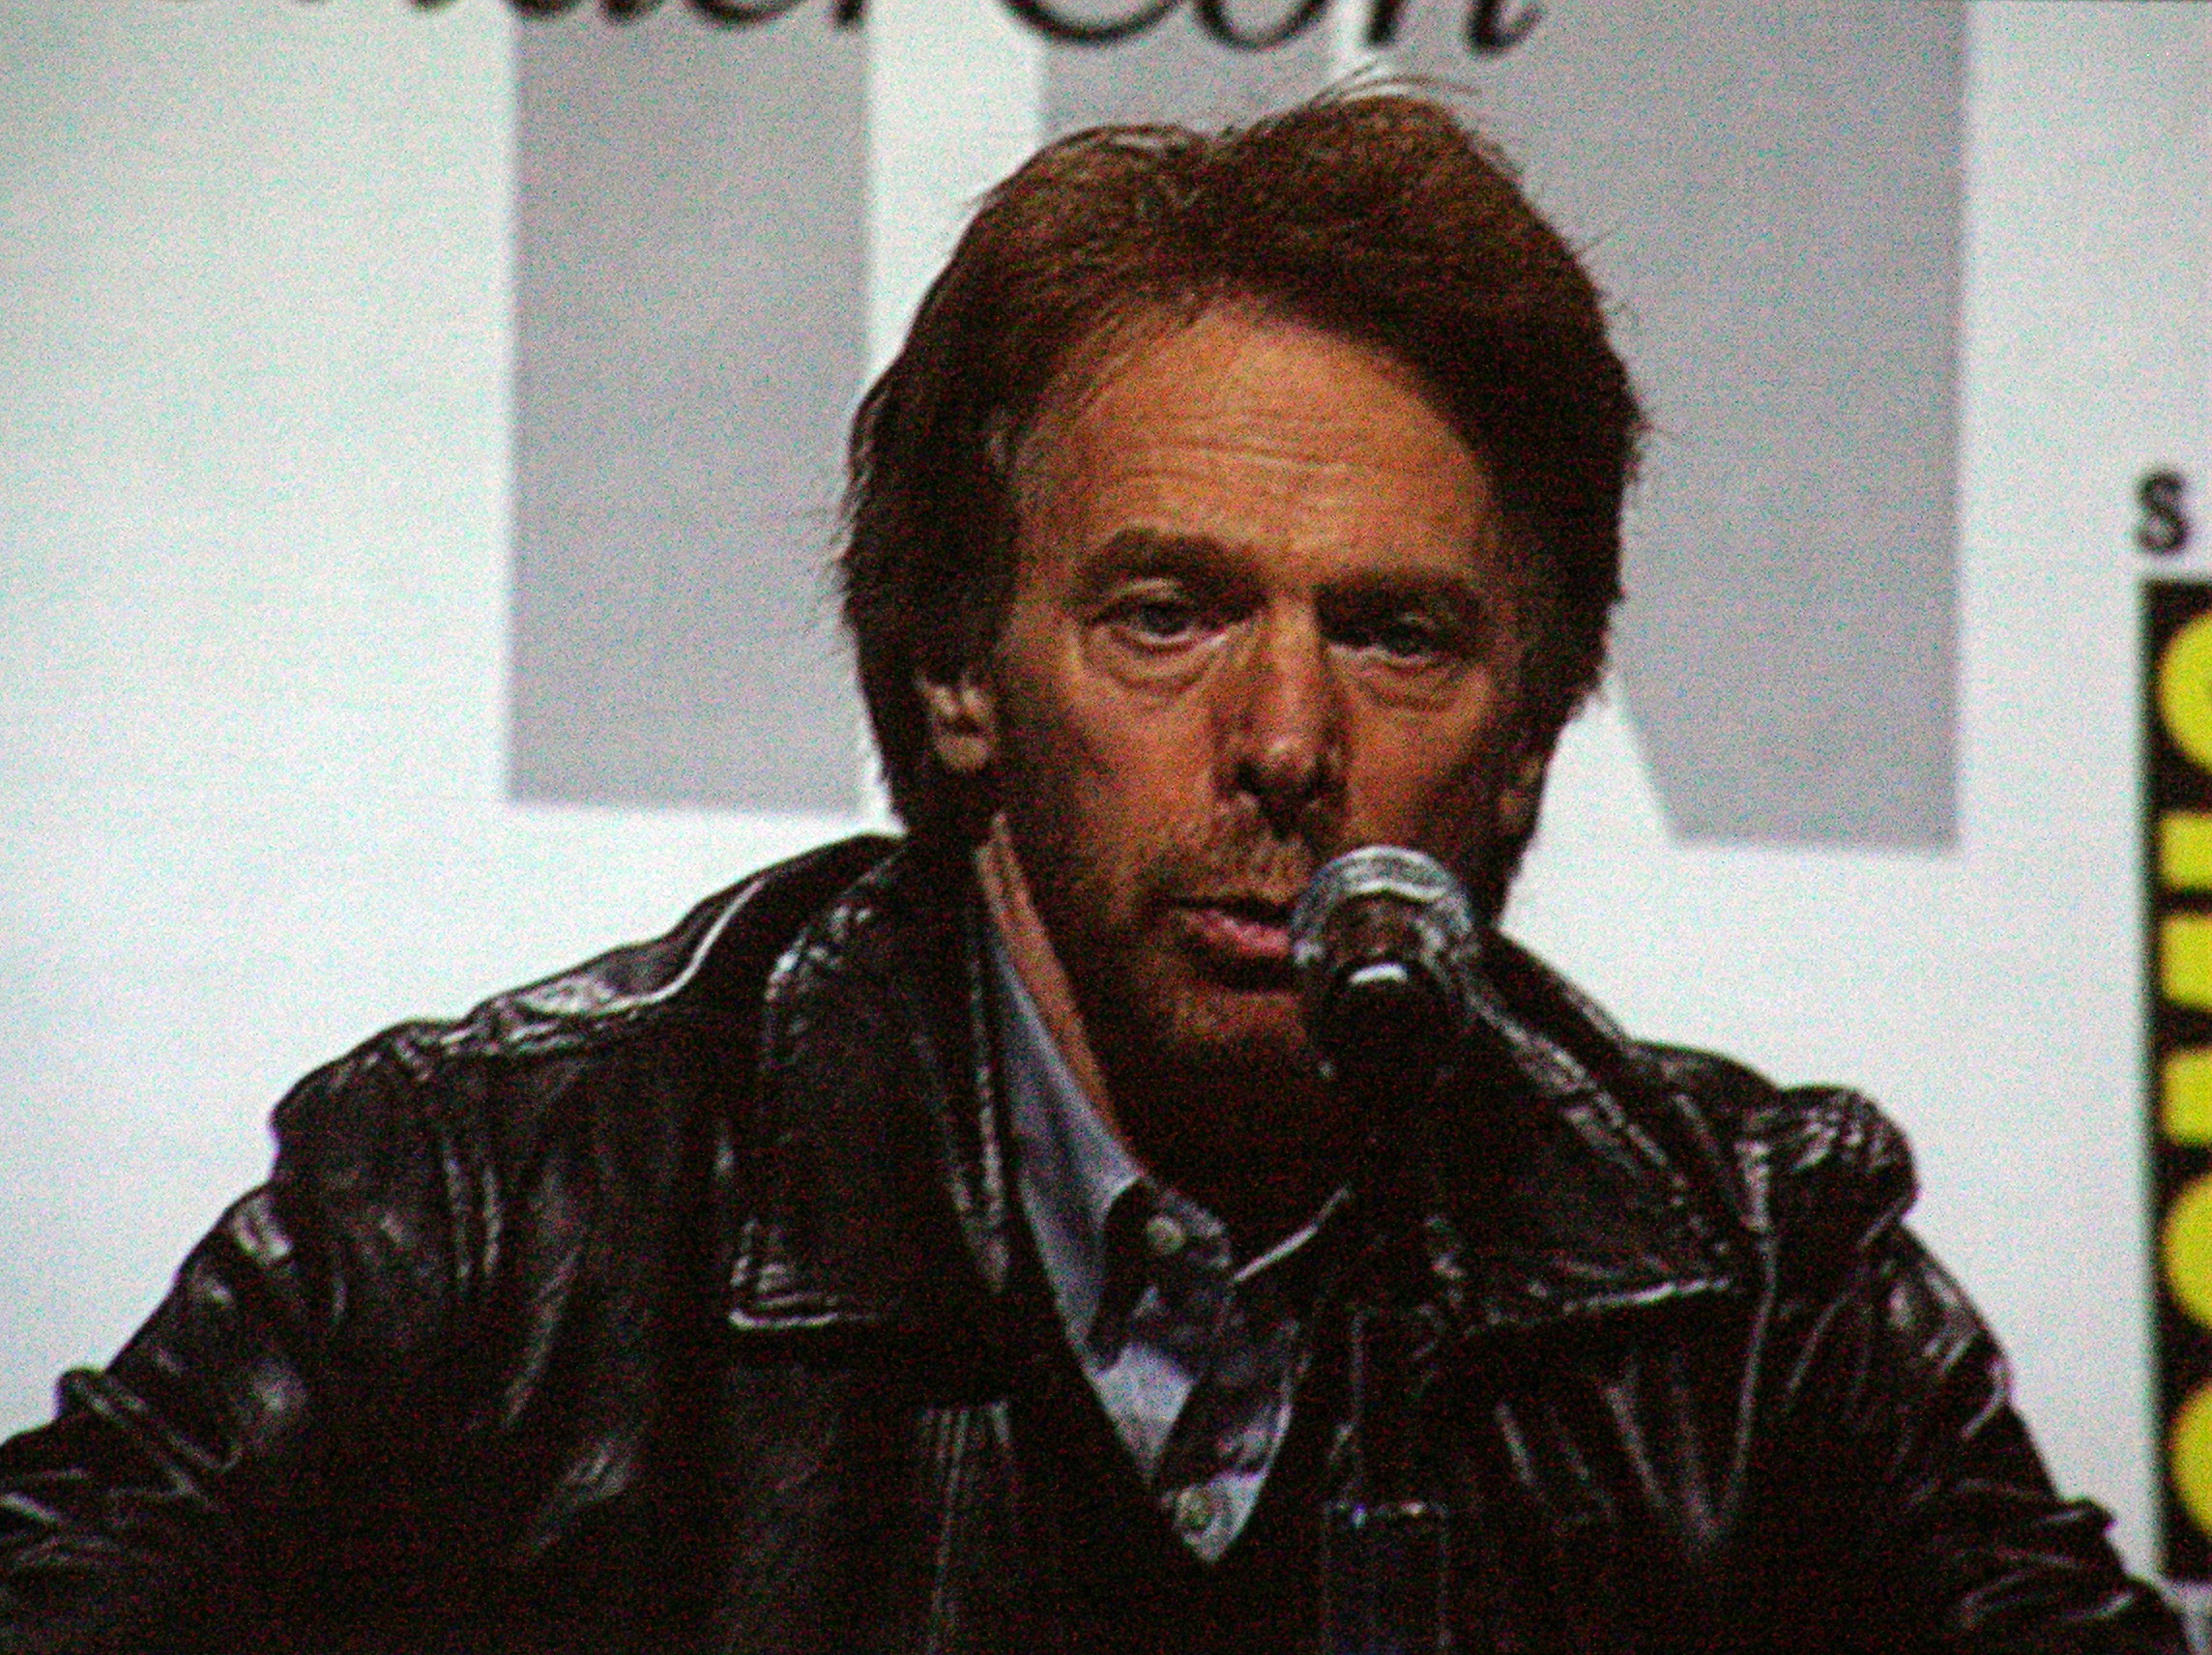 Bruckheimer at [[WonderCon]], April 3, 2010